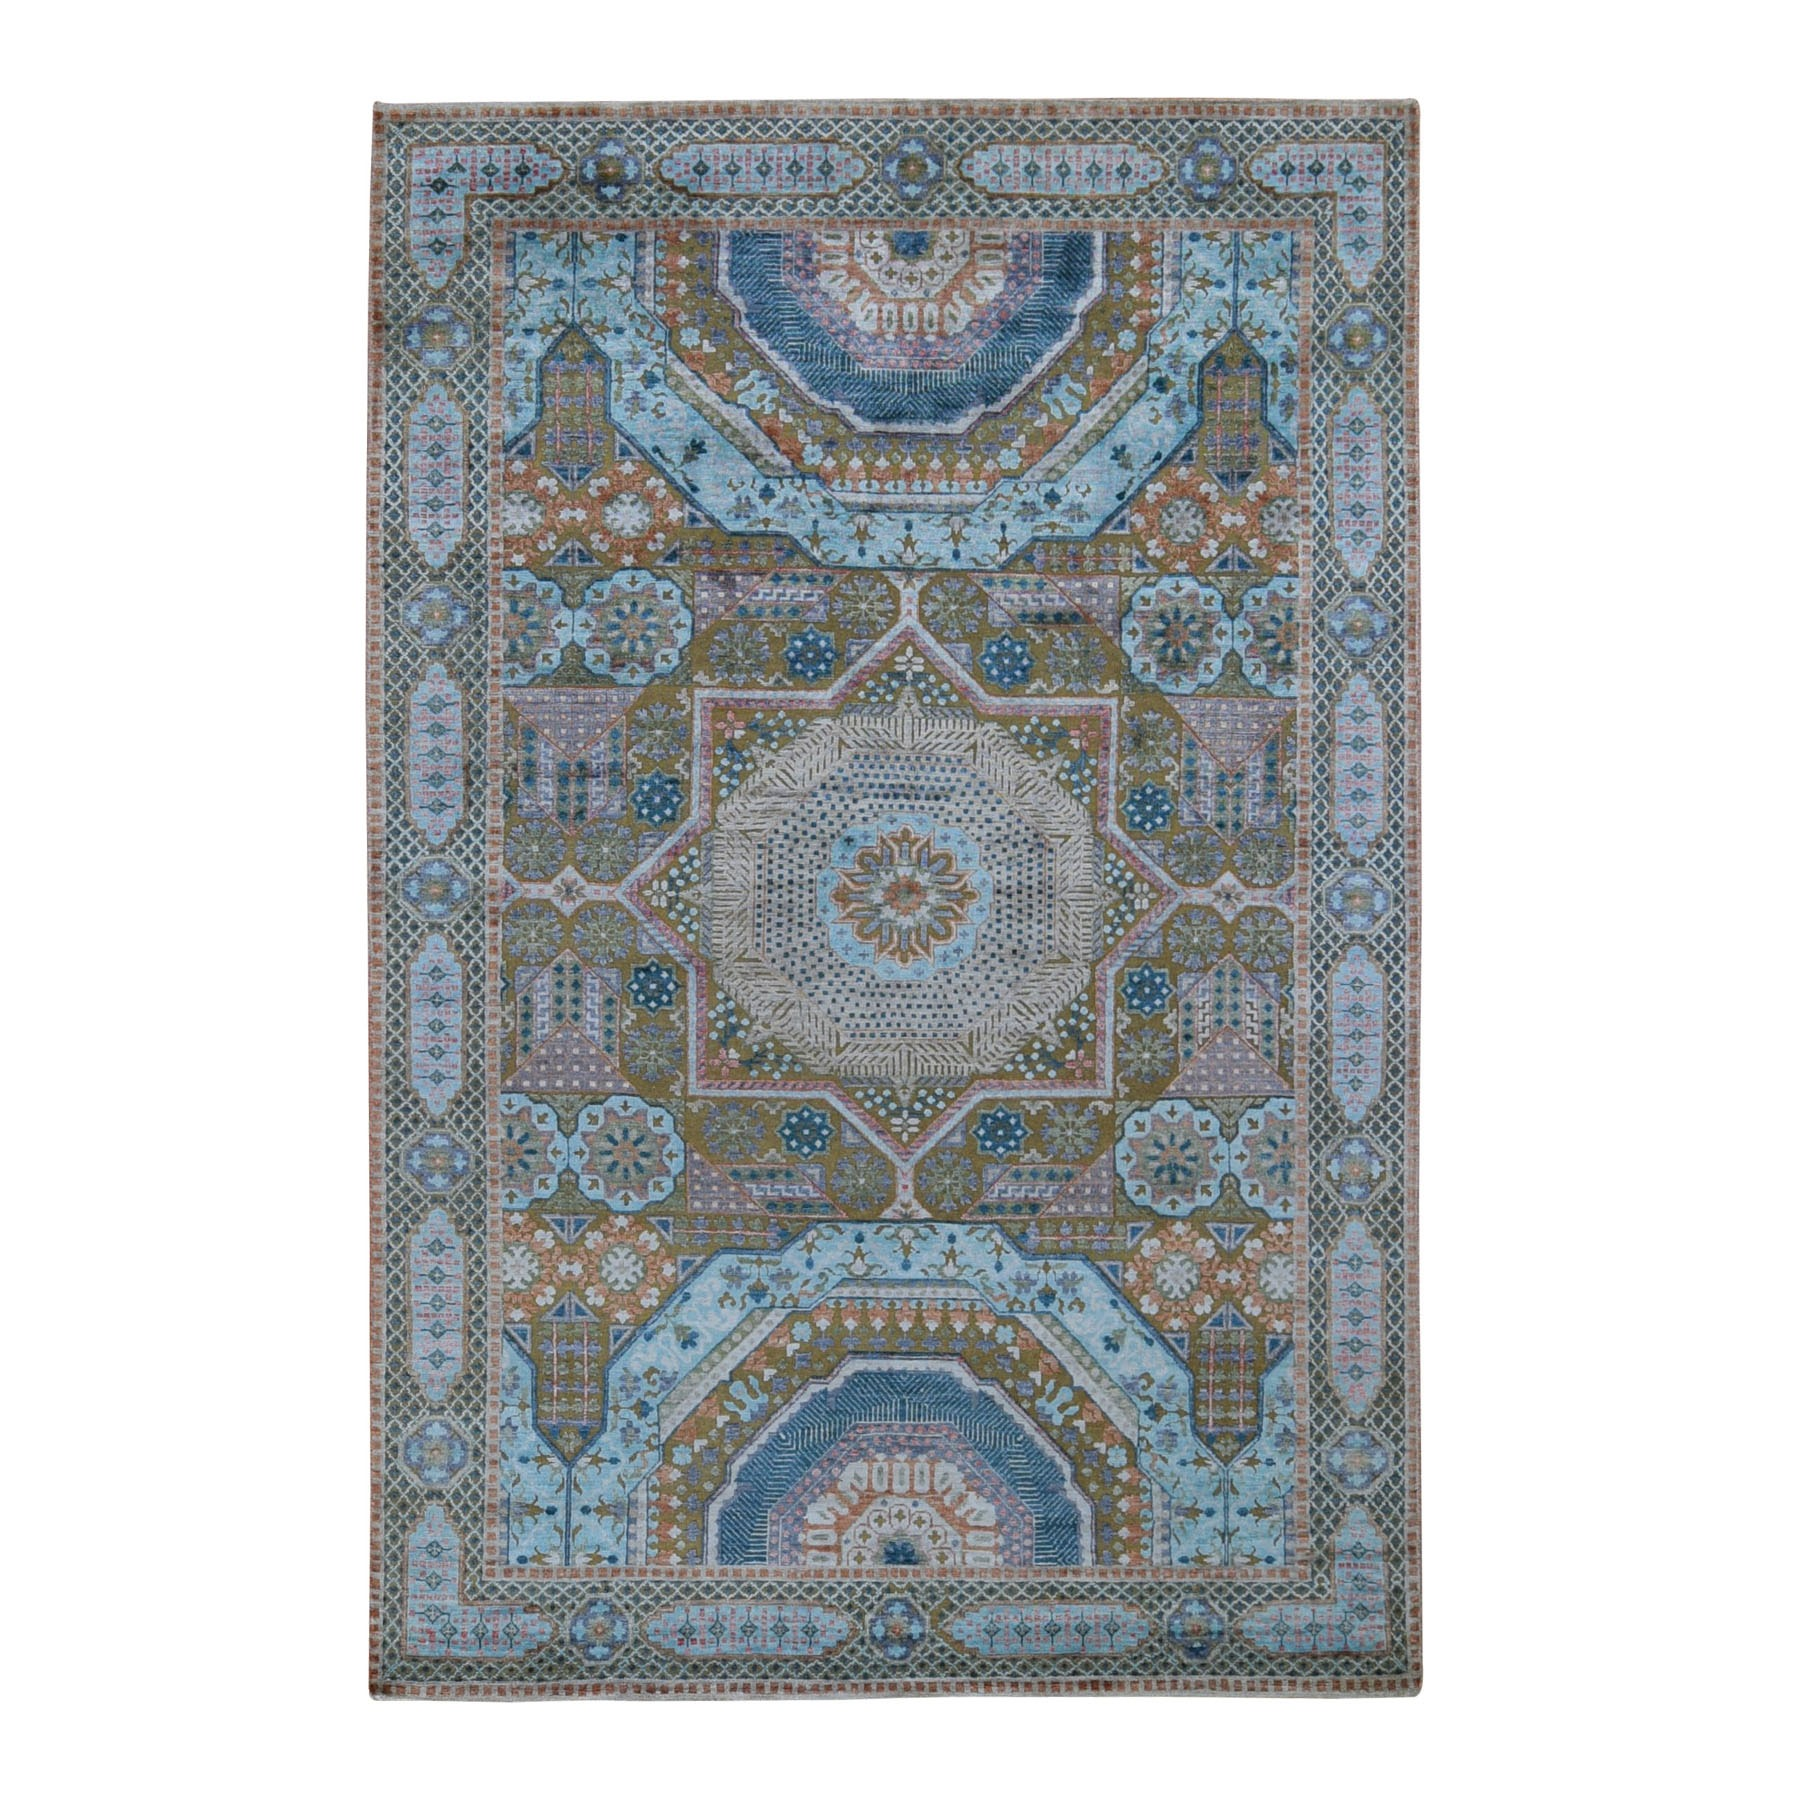 "5'10""x9' Blue Silk With Textured Wool Mamluk Design Hand knotted Oriental Rug"